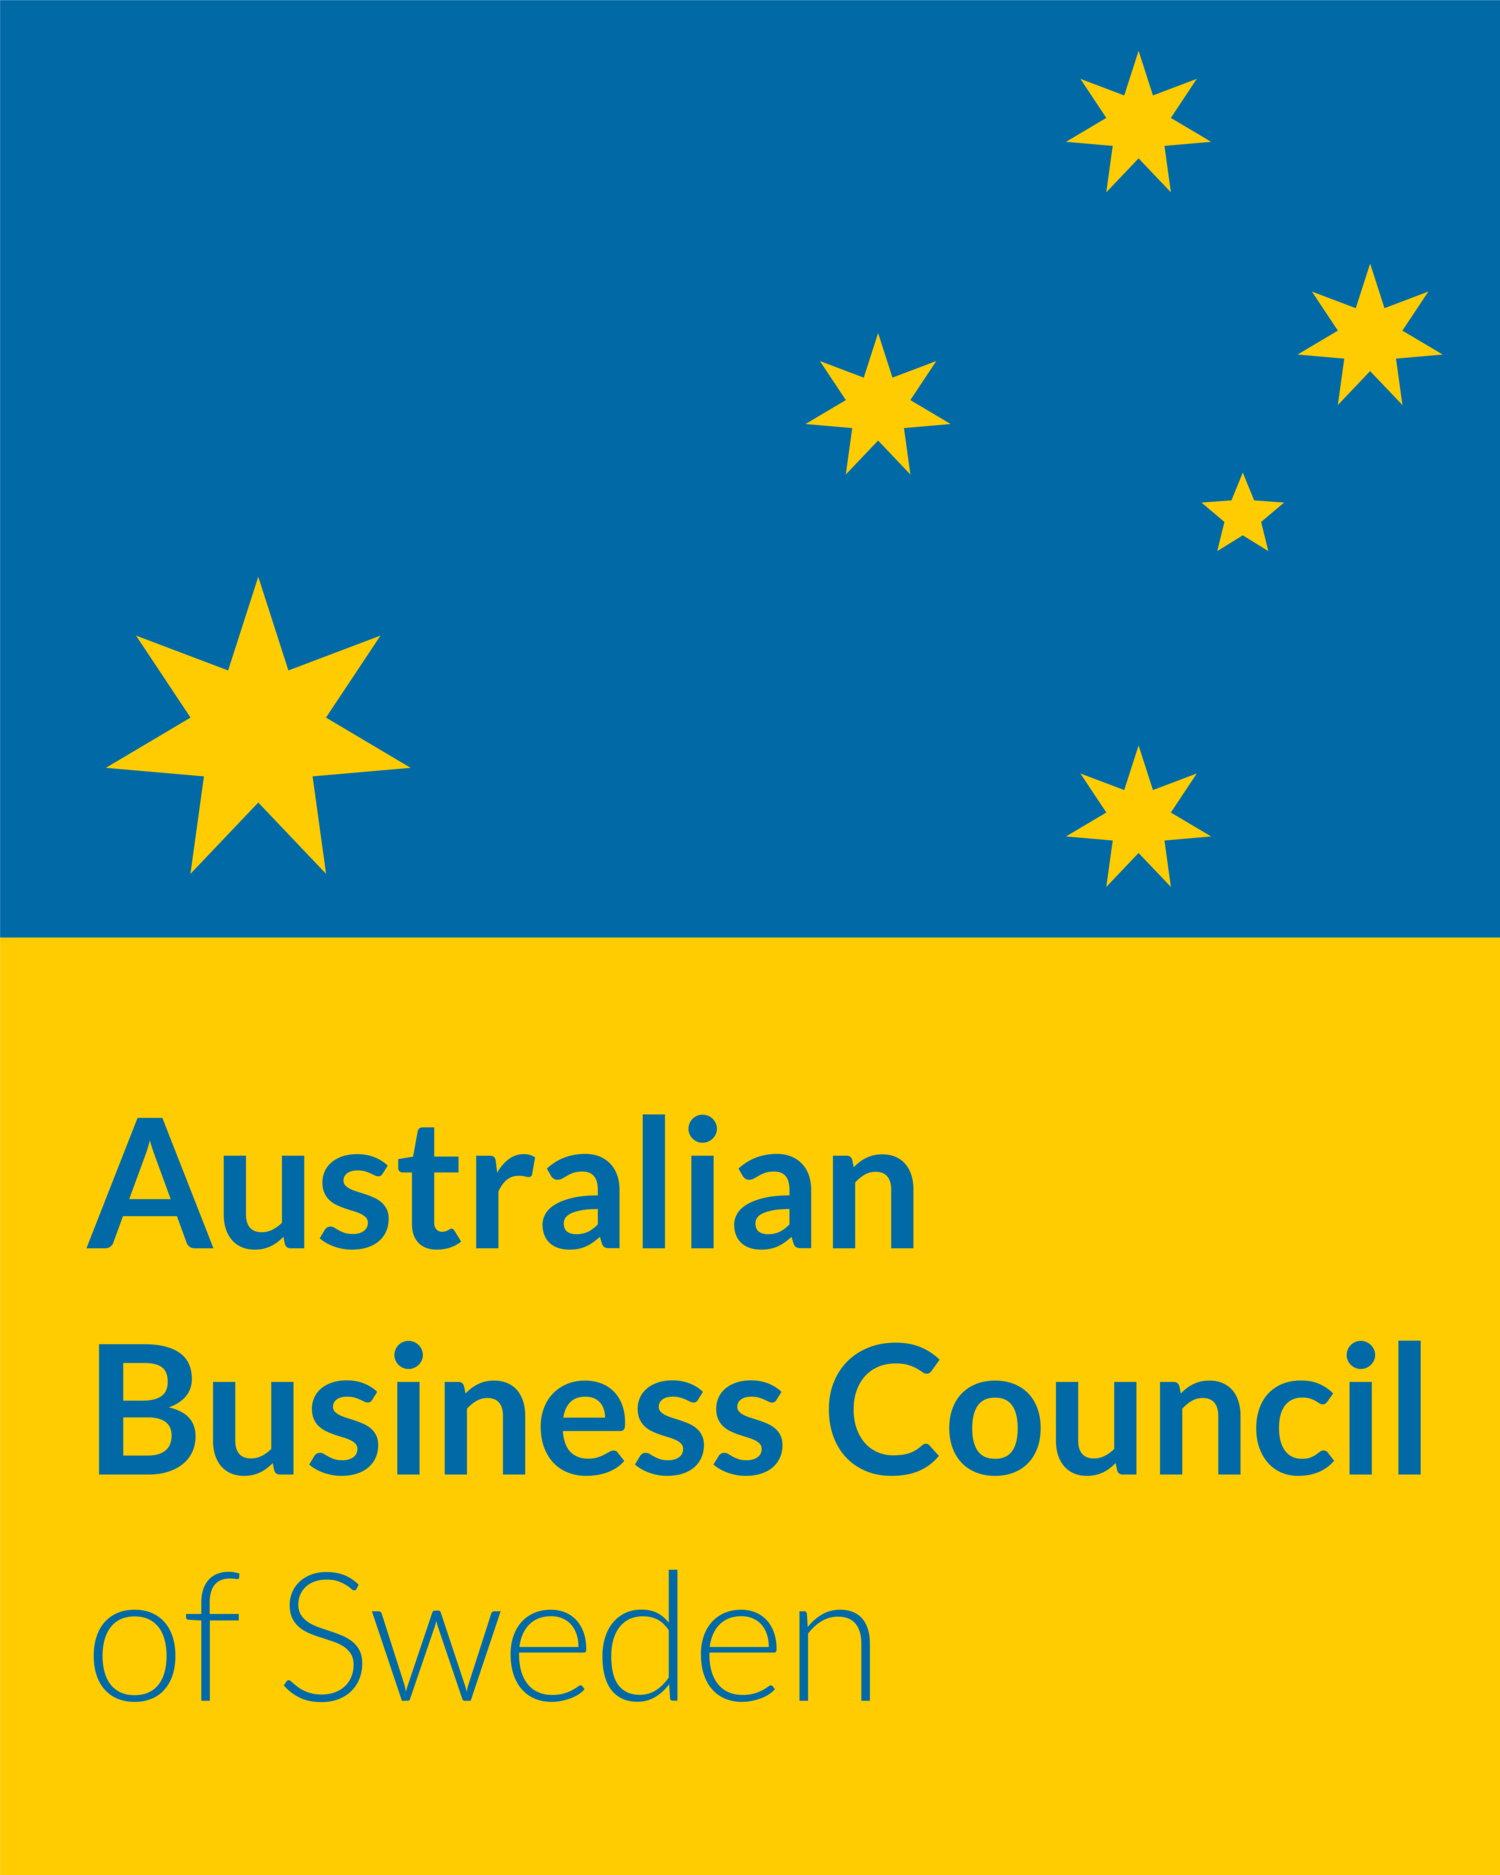 Australian Business Council of Sweden